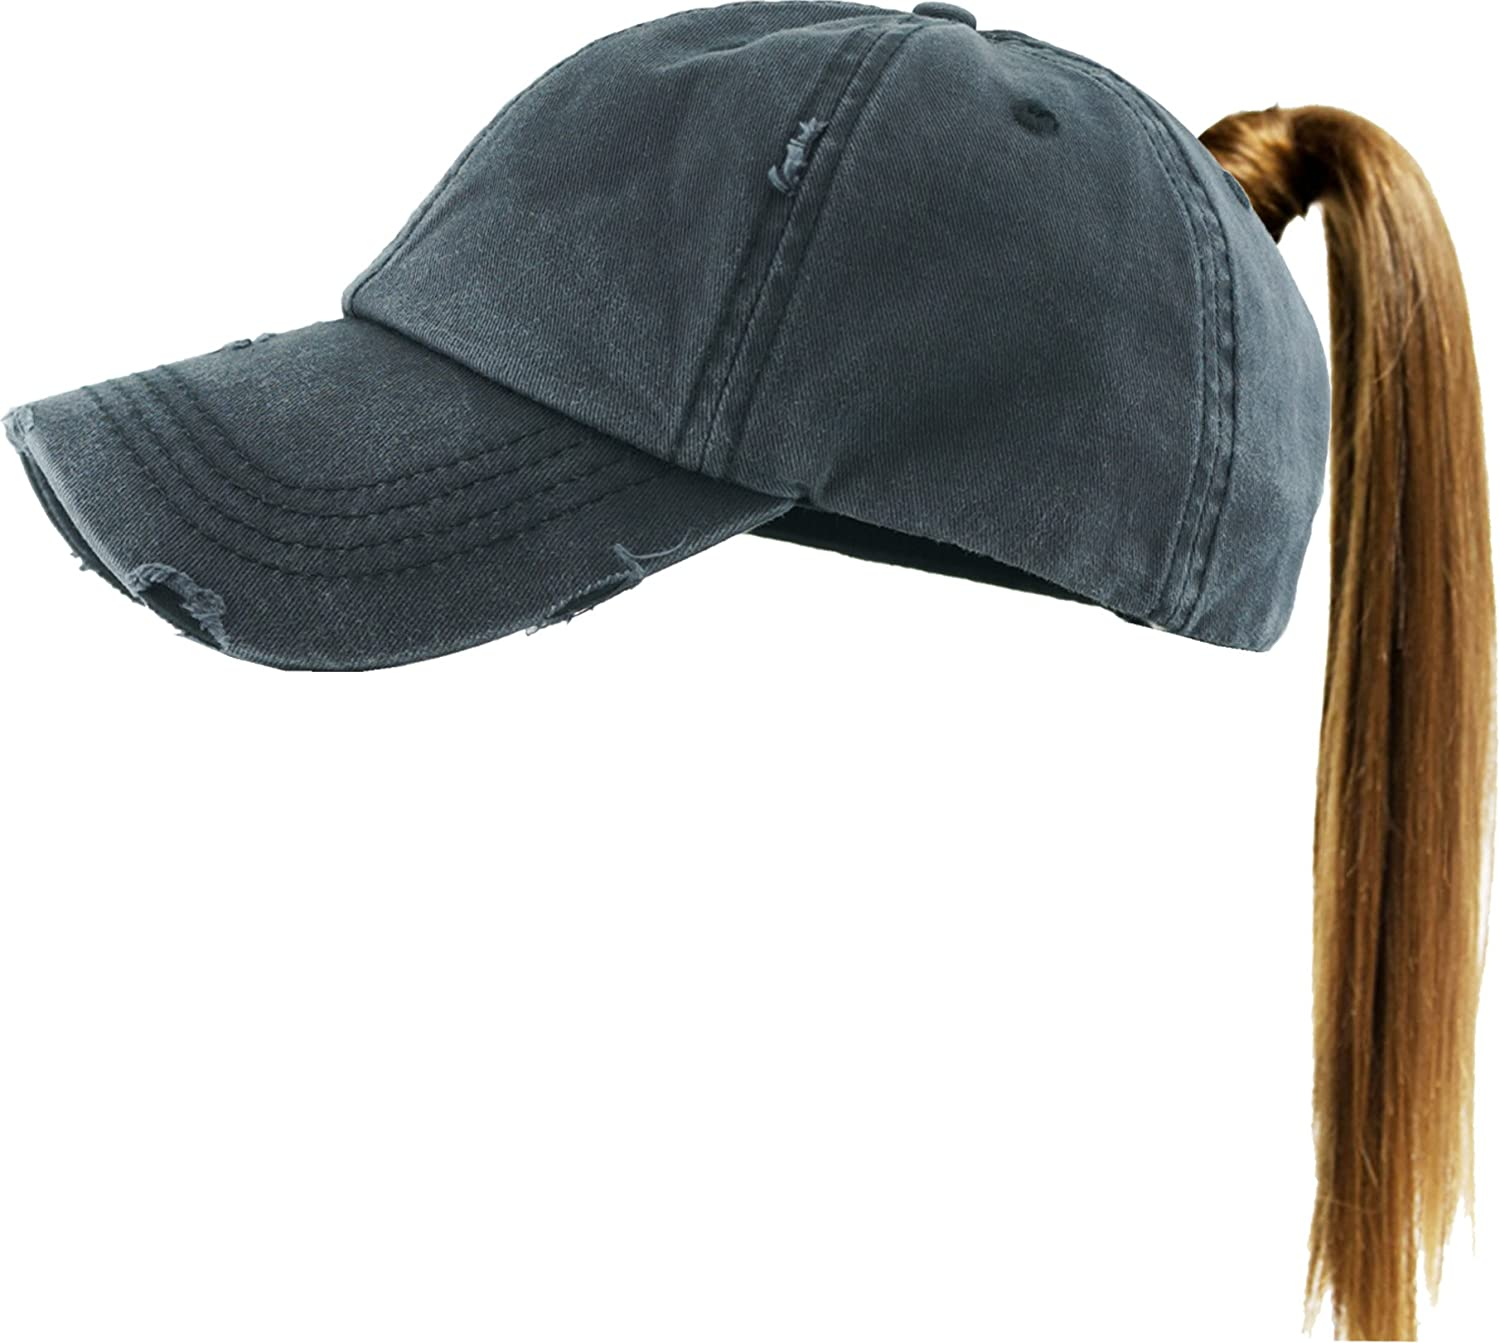 KBETHOS Ponytail Messy High Bun Hat Ponycaps Adjustable Cotton Mesh Trucker Baseball Cap PONY-001 BLK